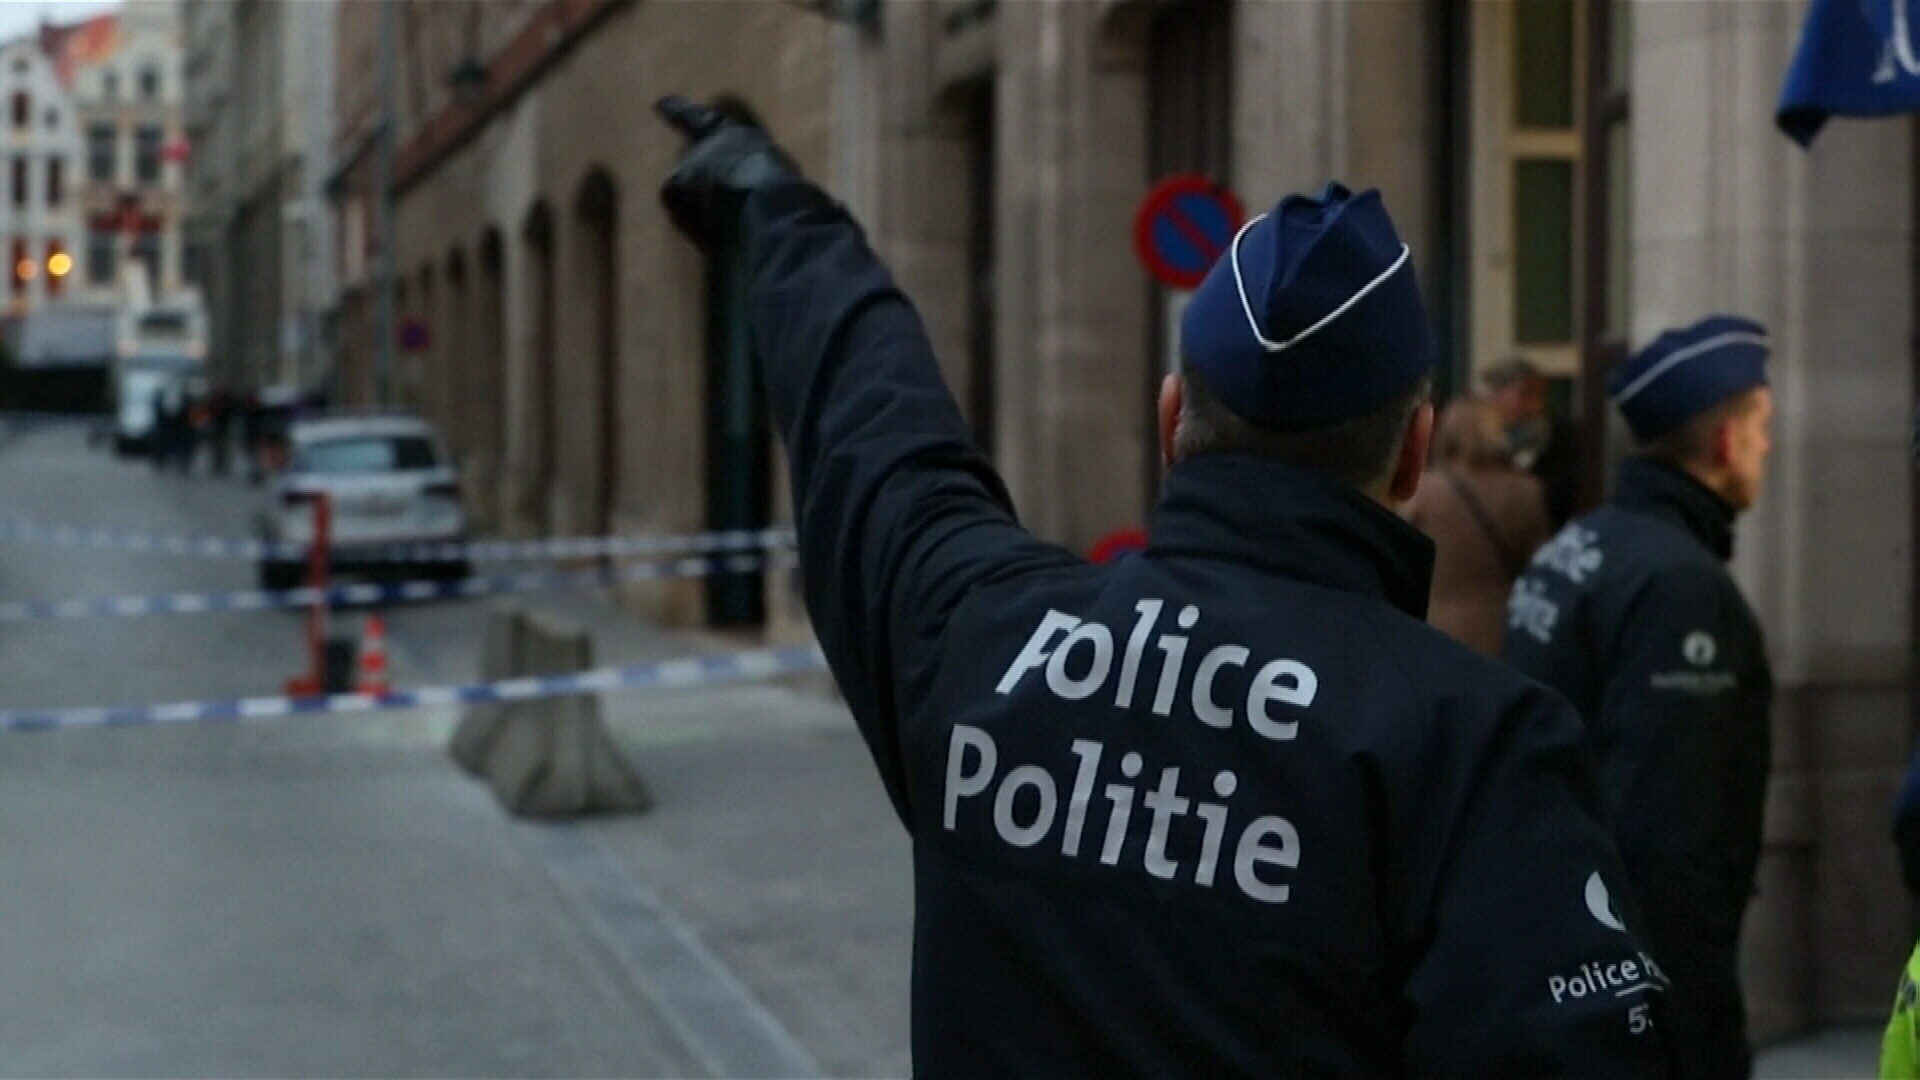 Belgian officer stabbed in the neck